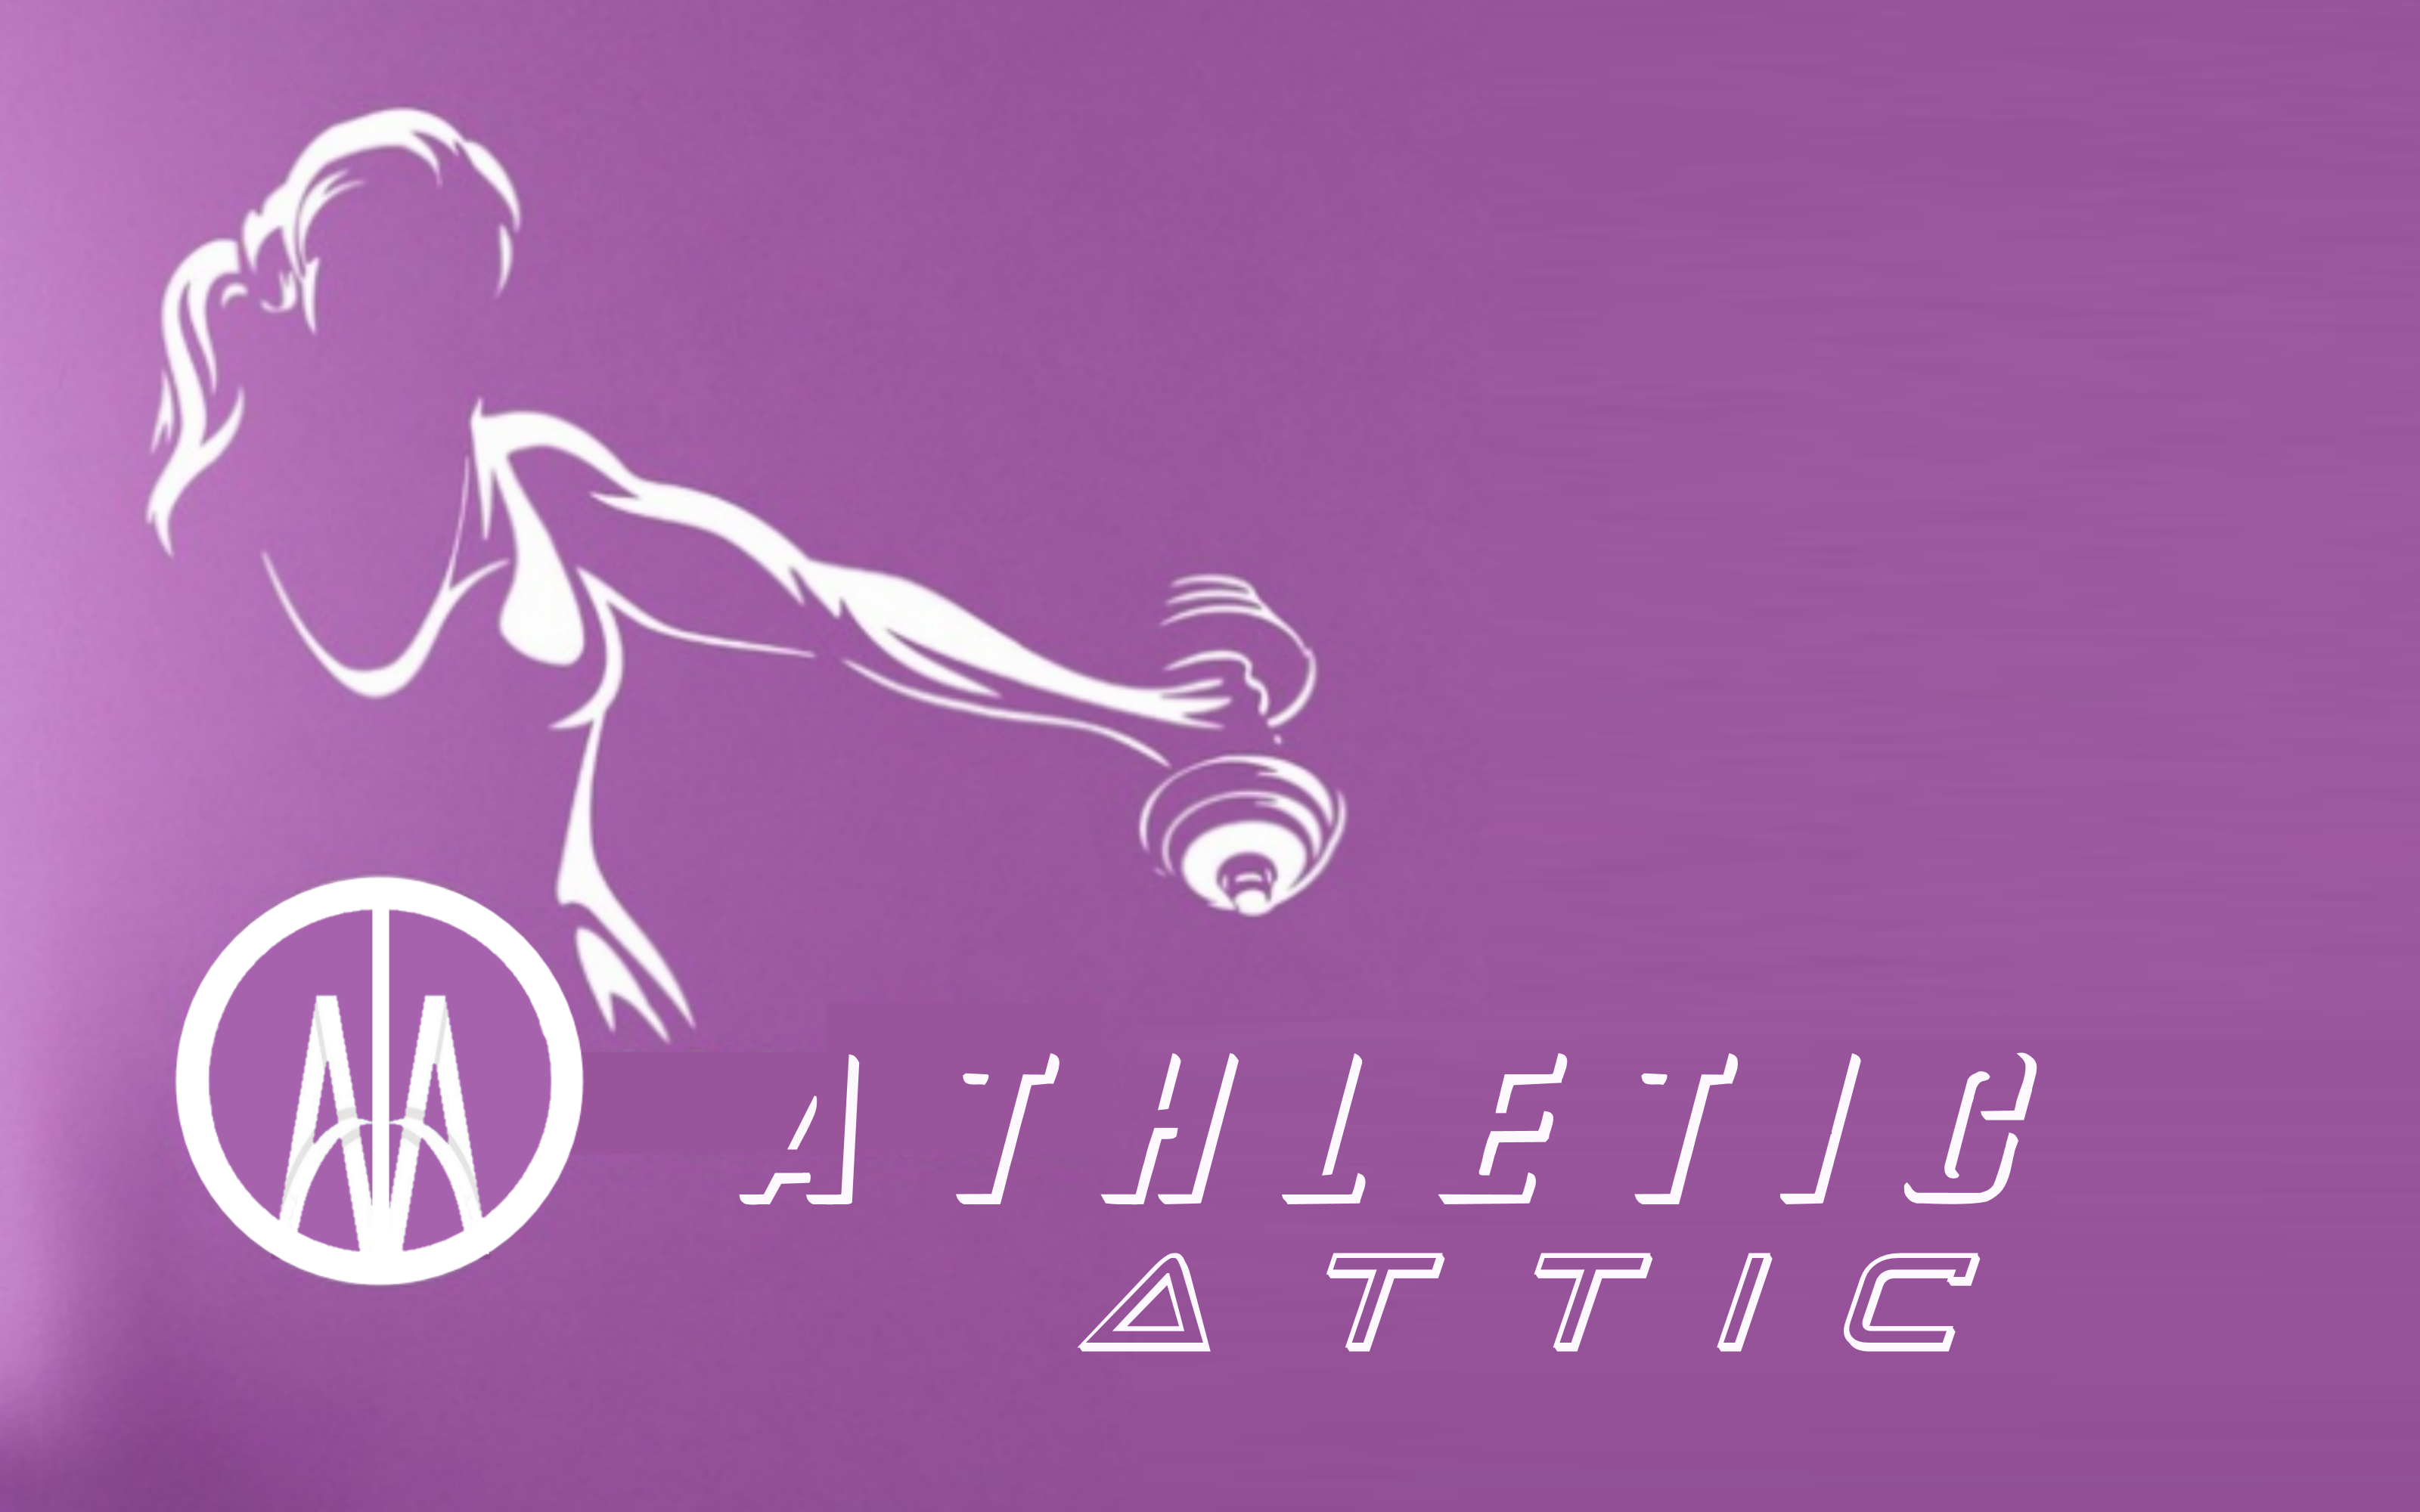 Logo Design by Roberto Bassi - Entry No. 167 in the Logo Design Contest Fun Logo Design for Athletic Attic.